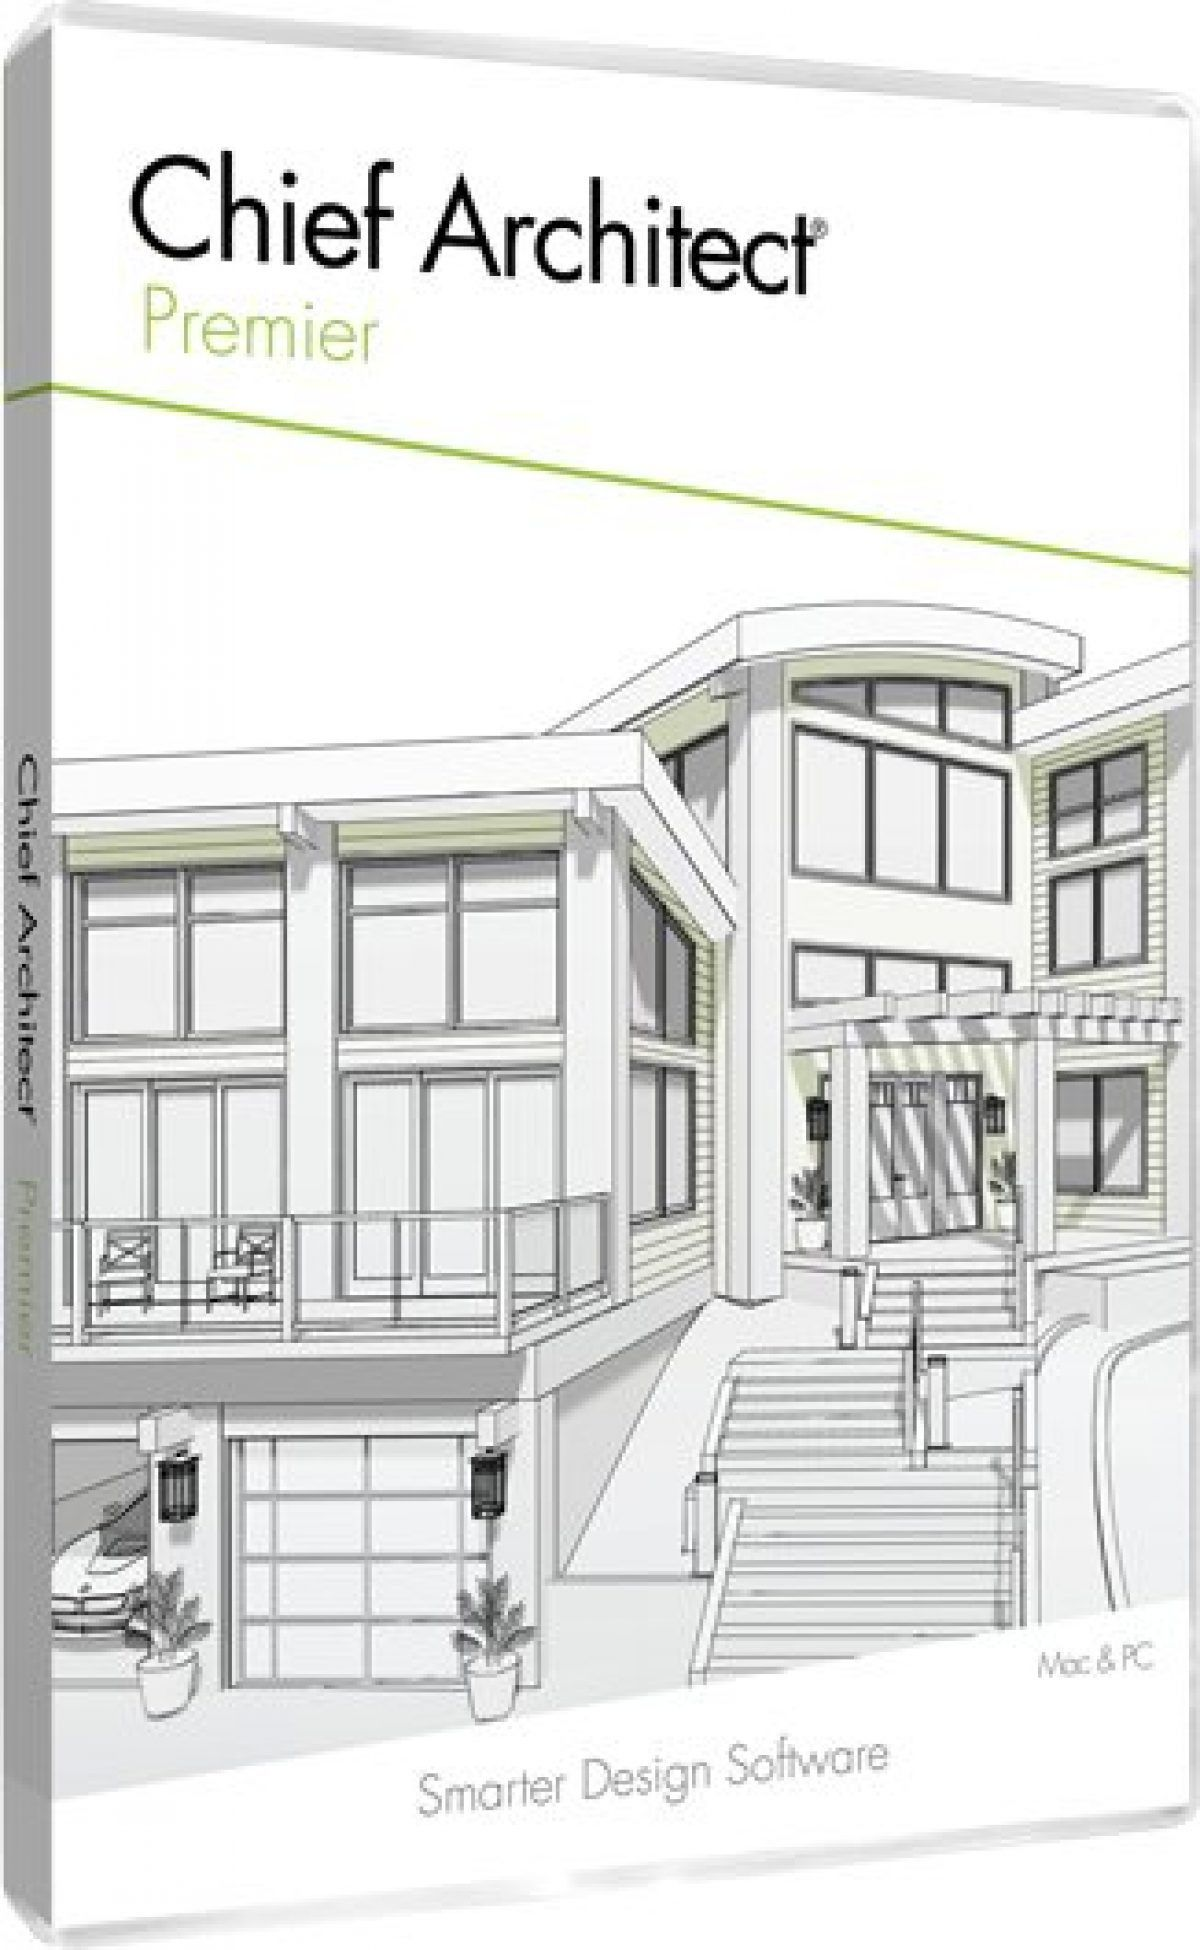 Architectural House Plans Software Free Download 2021 In 2020 Software Architecture Design Architect Design Chief Architect